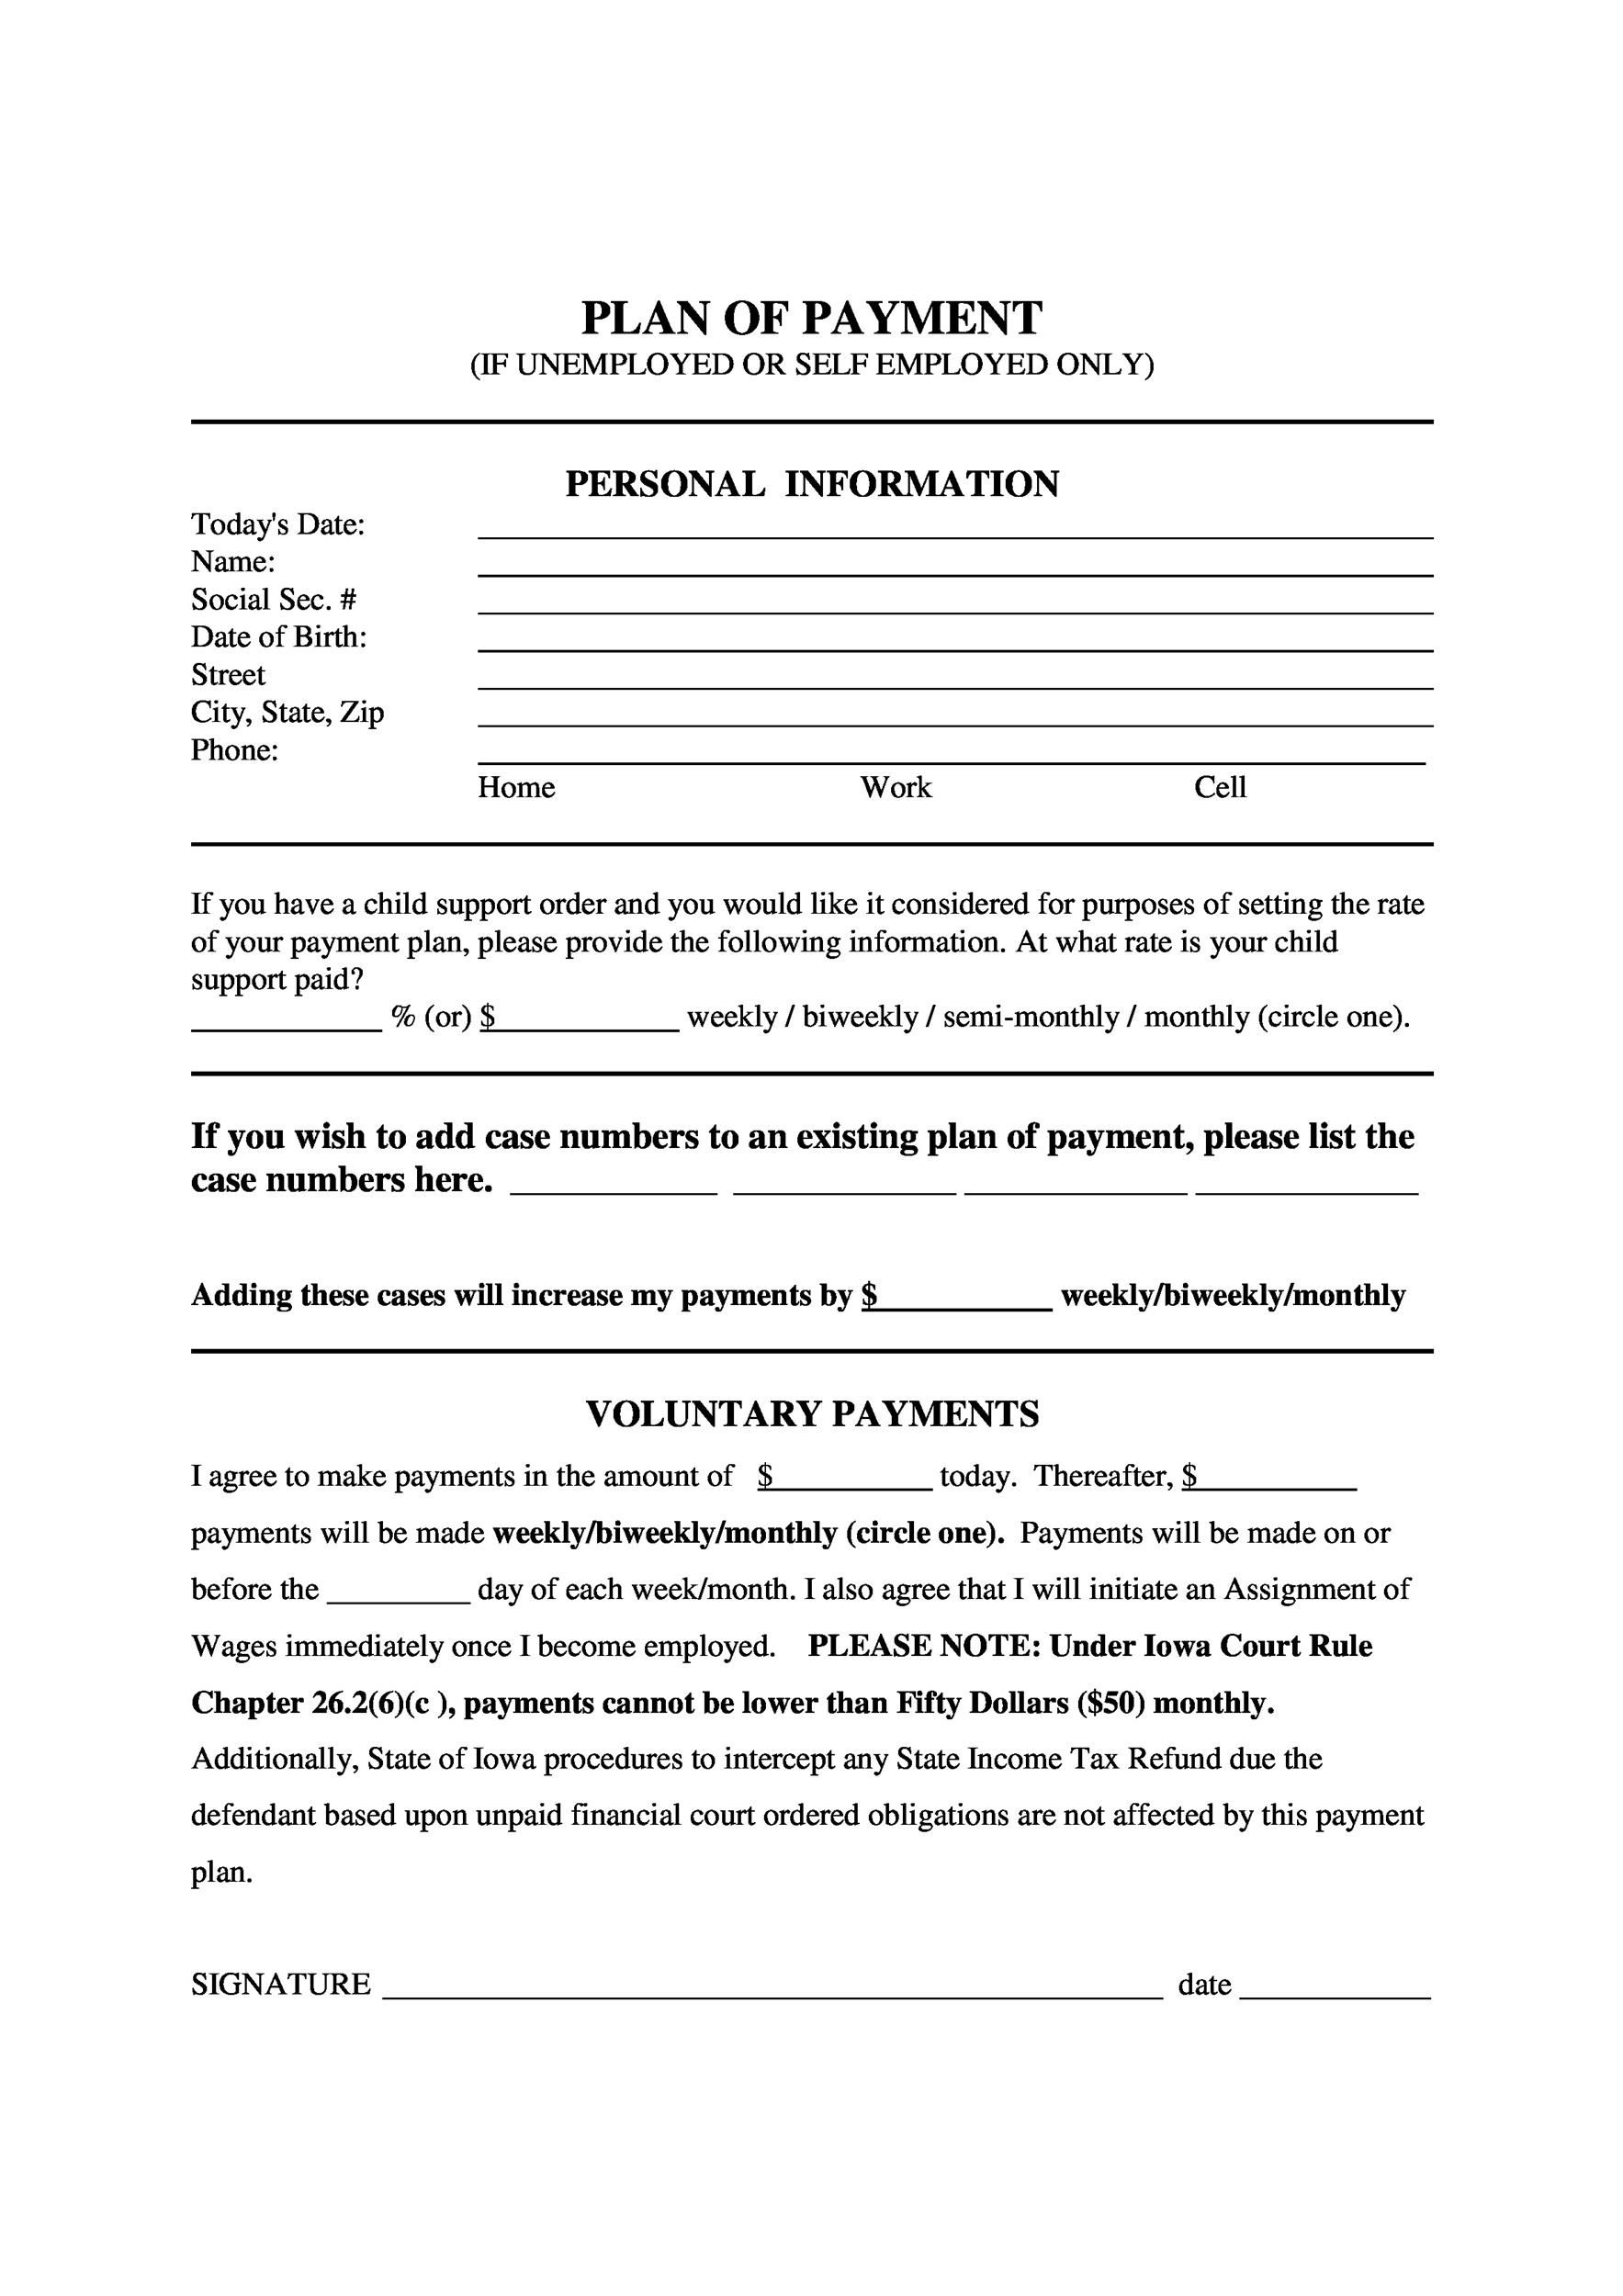 007 Striking Installment Payment Contract Template Image  Agreement Free Car WordFull